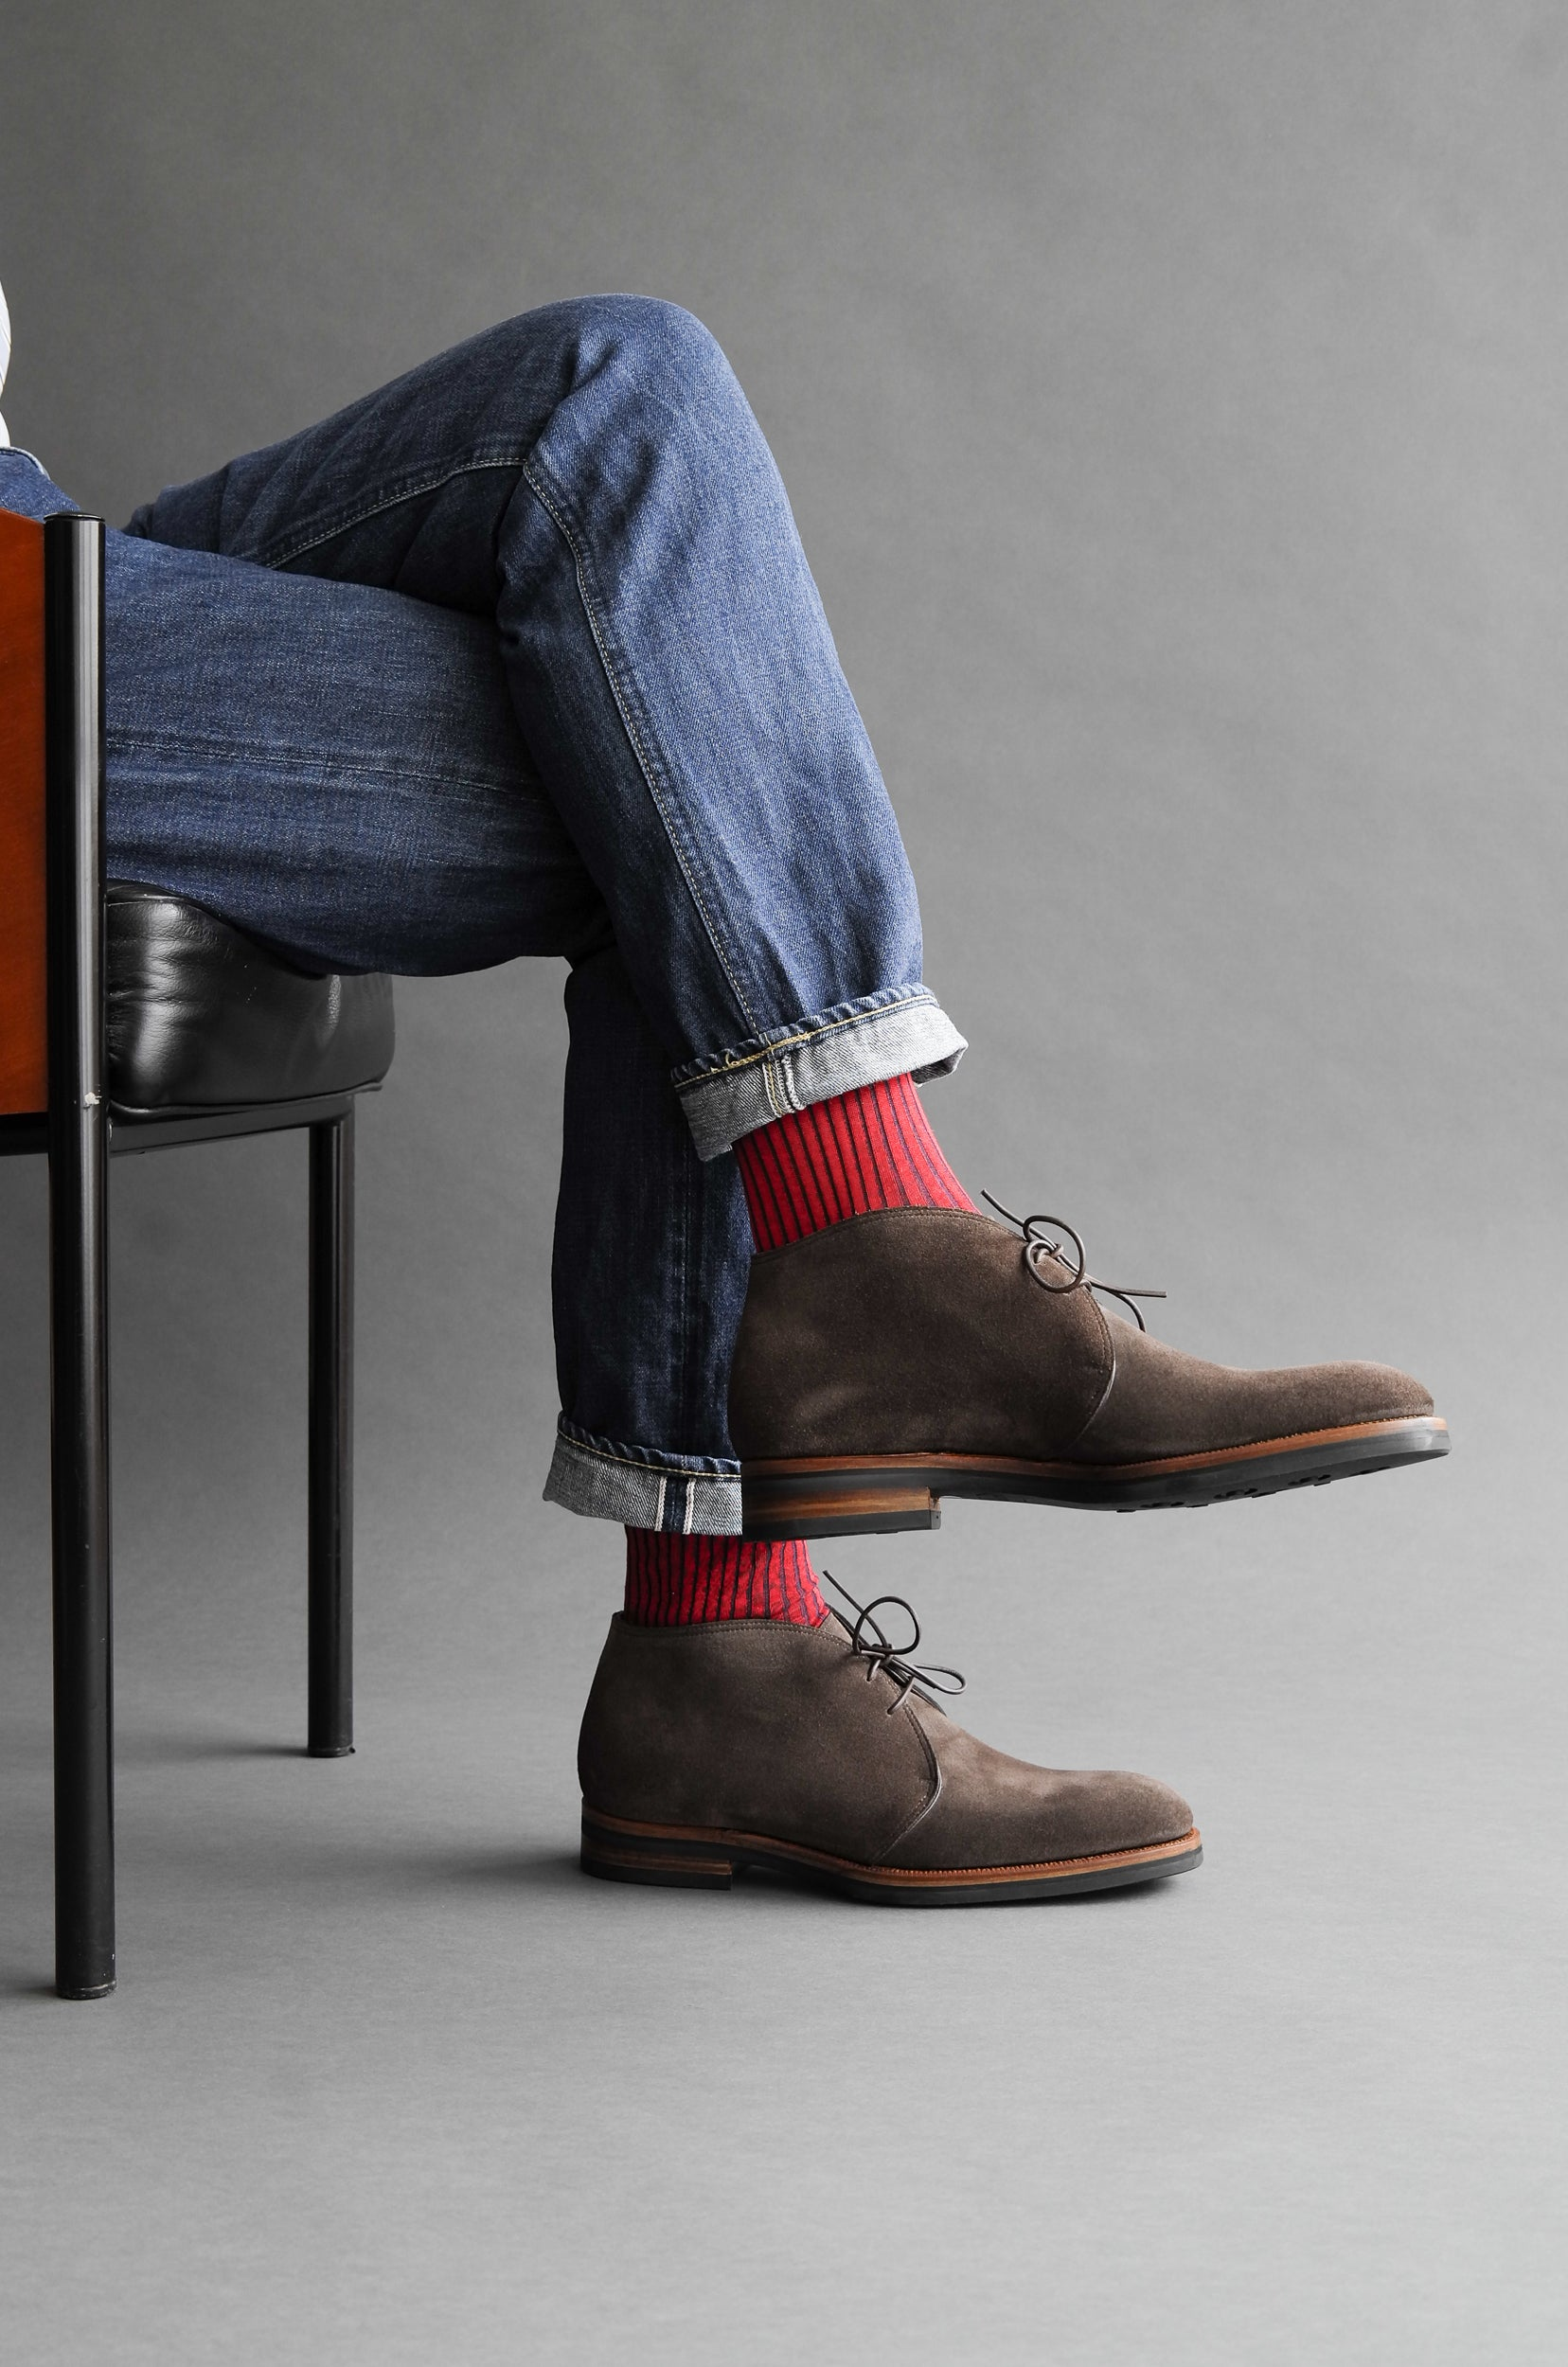 Zonkey Boor hand welted two eyelet chukka boots from hunting suede